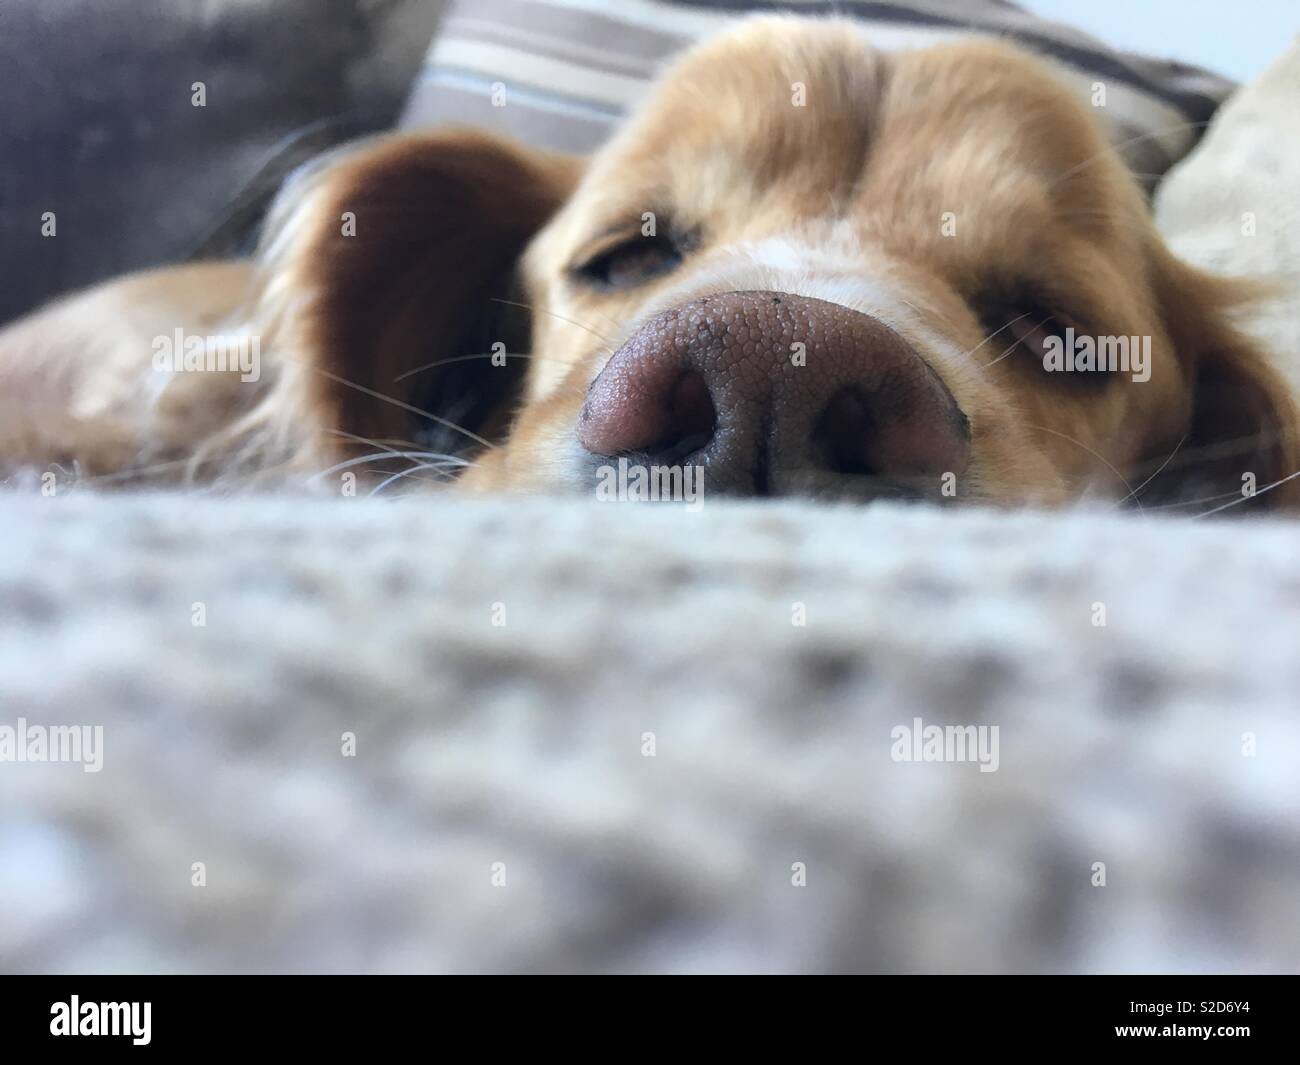 Lazy dog - Stock Image